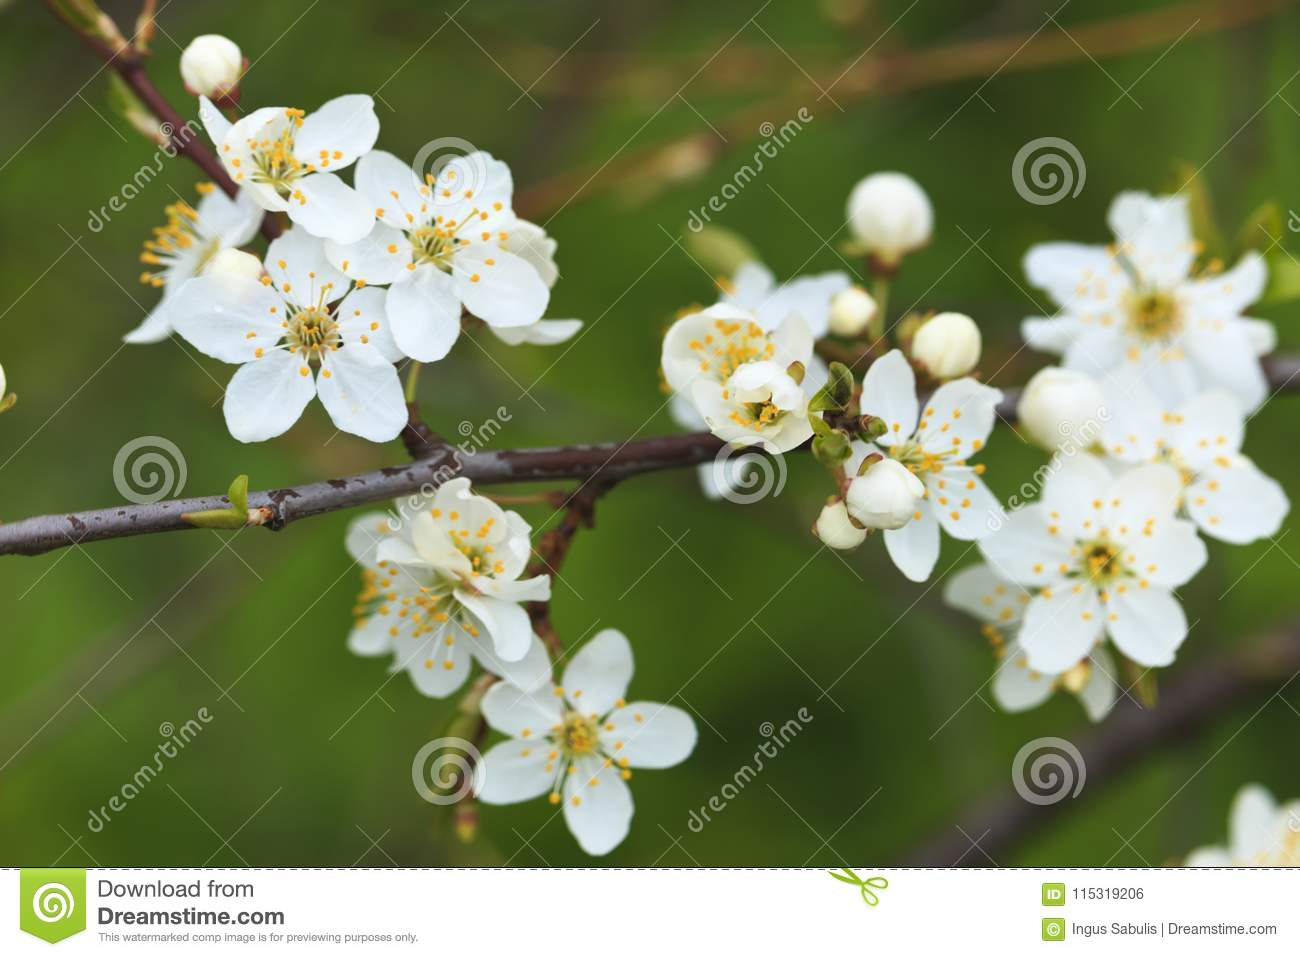 Blooming wild plum tree in daylight stock photo image of beauty blooming wild plum tree in daylight white flowers in small clusters on a wild plum tree branch mightylinksfo